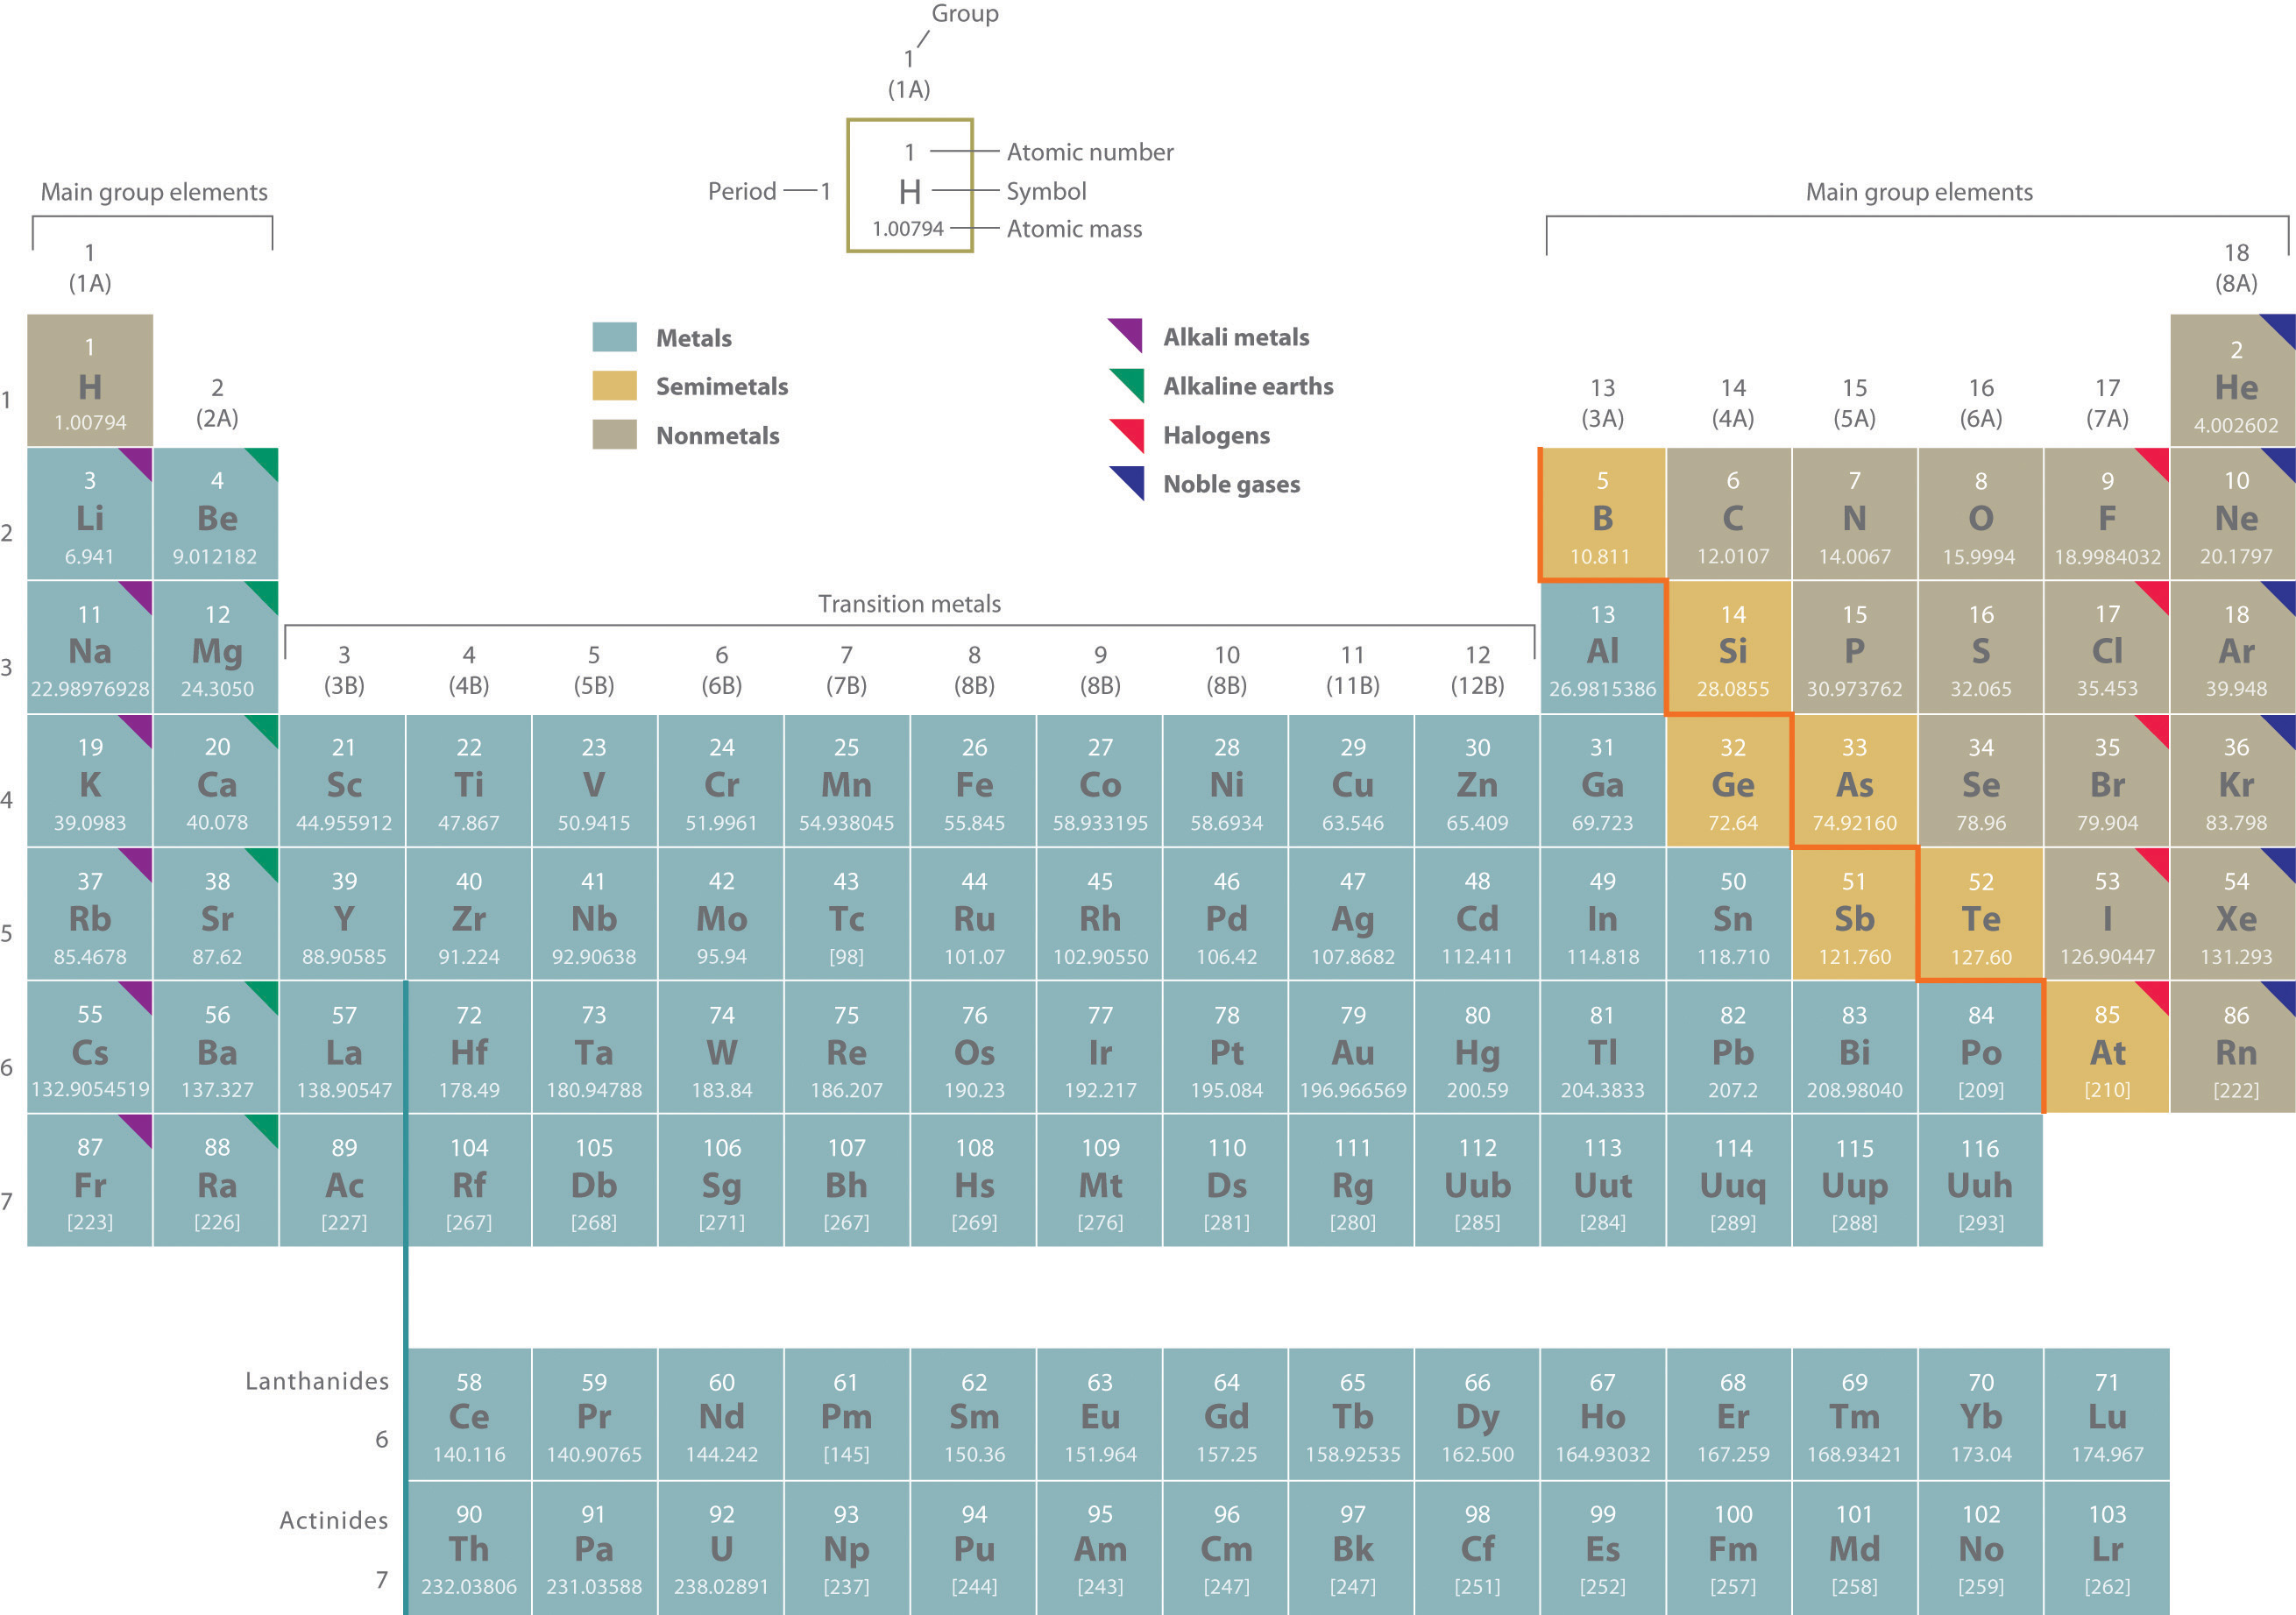 Radioactive Isotopes Periodic Table Elements Periodic Table of Elements